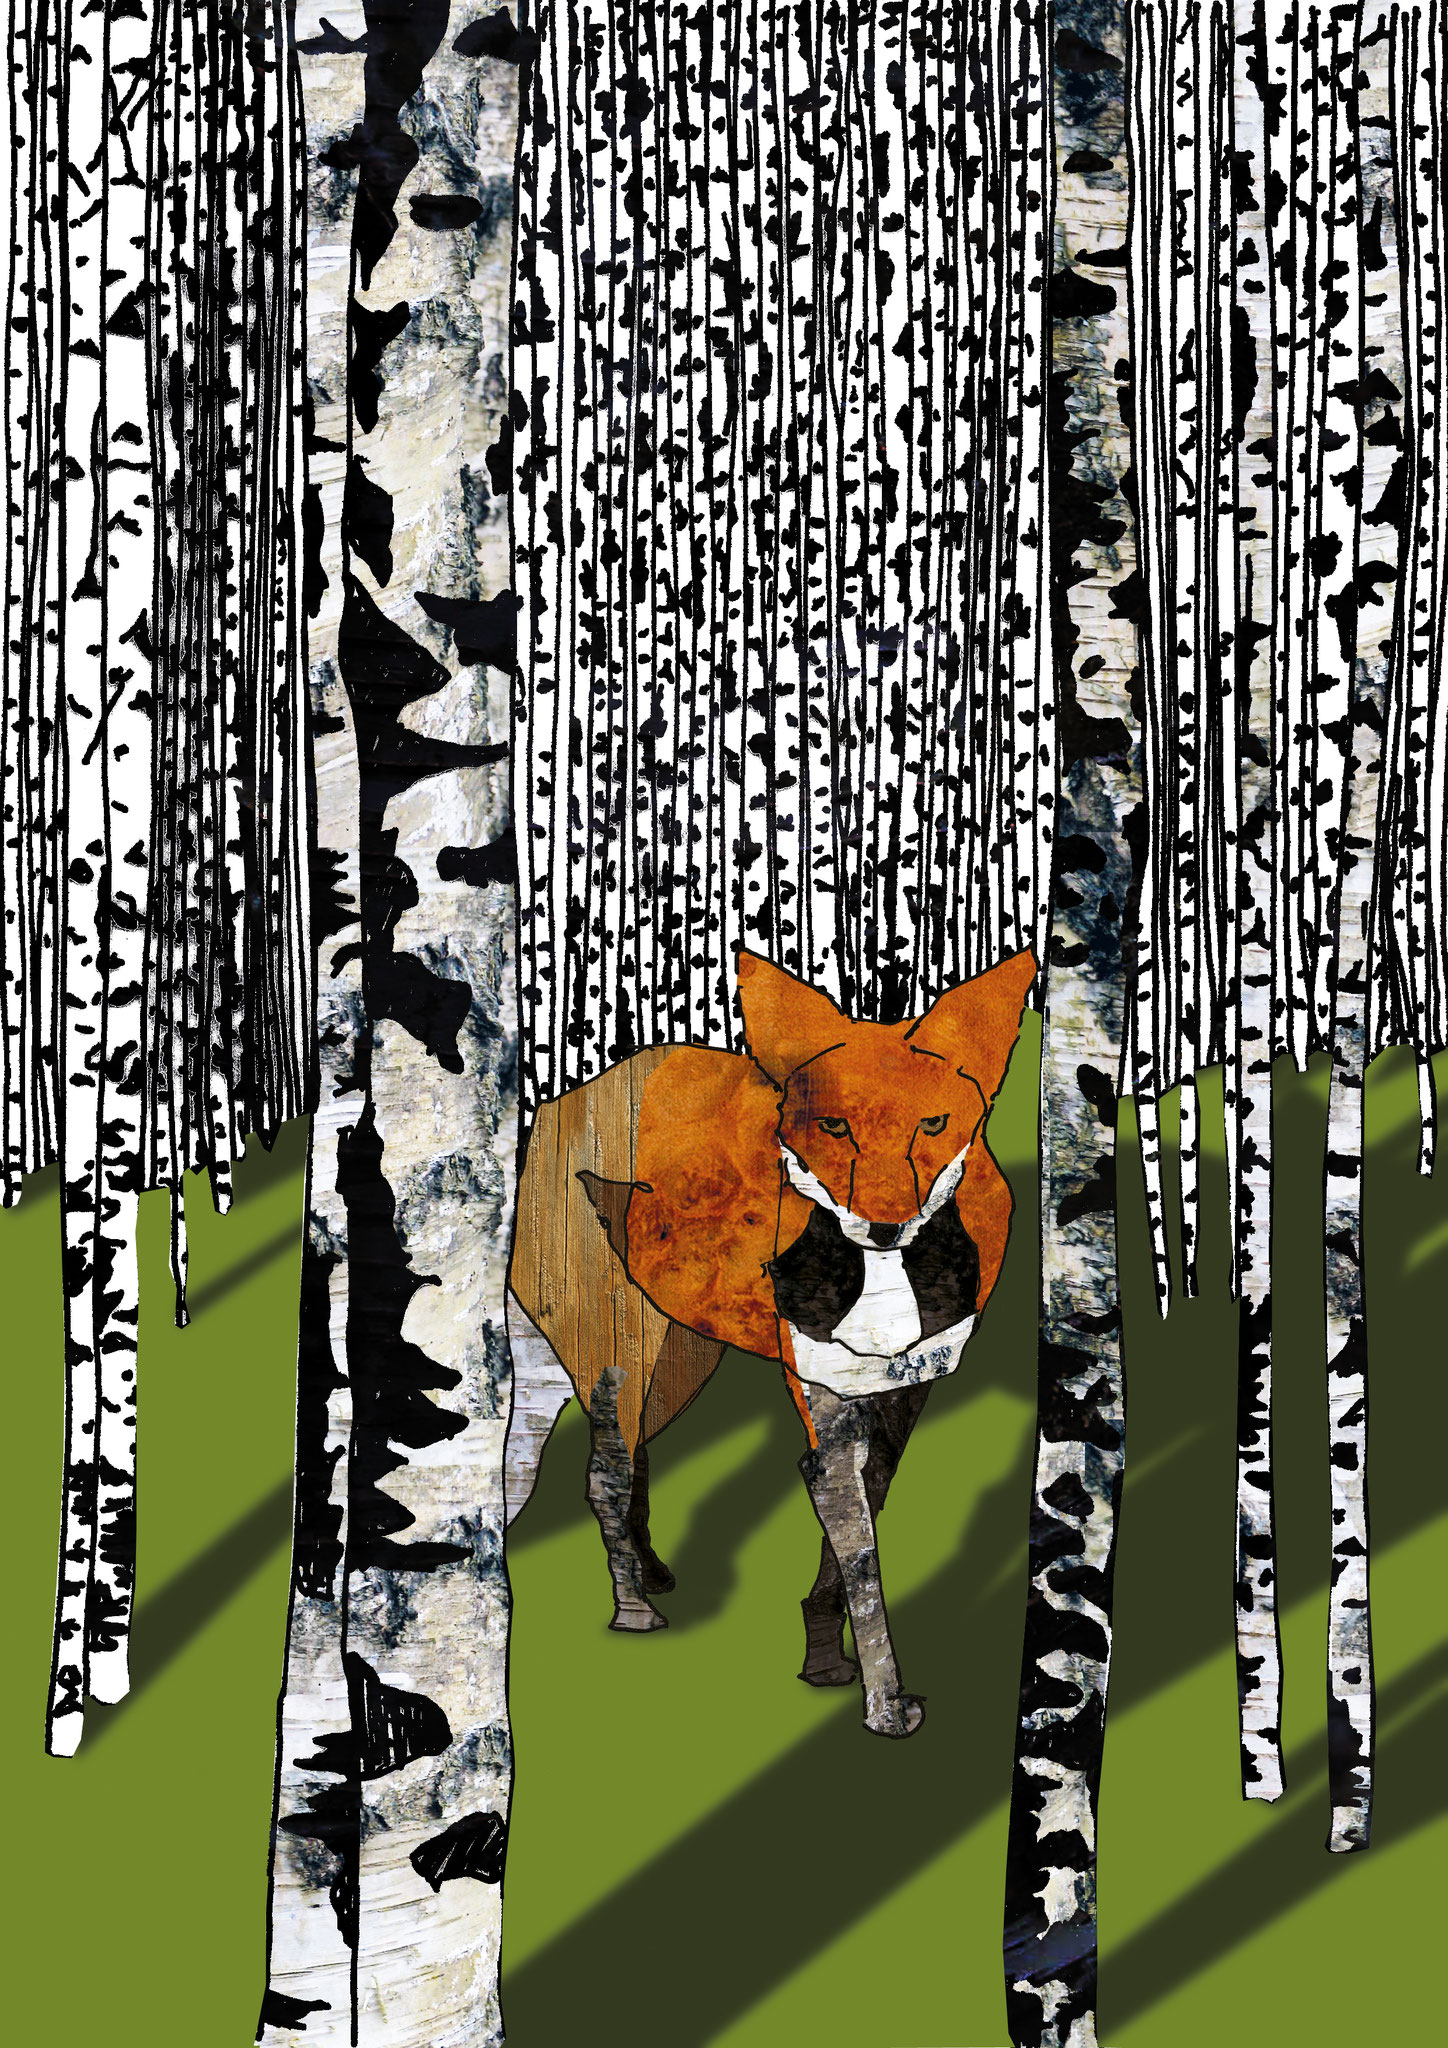 Fuchs im Birkenwald, Collage